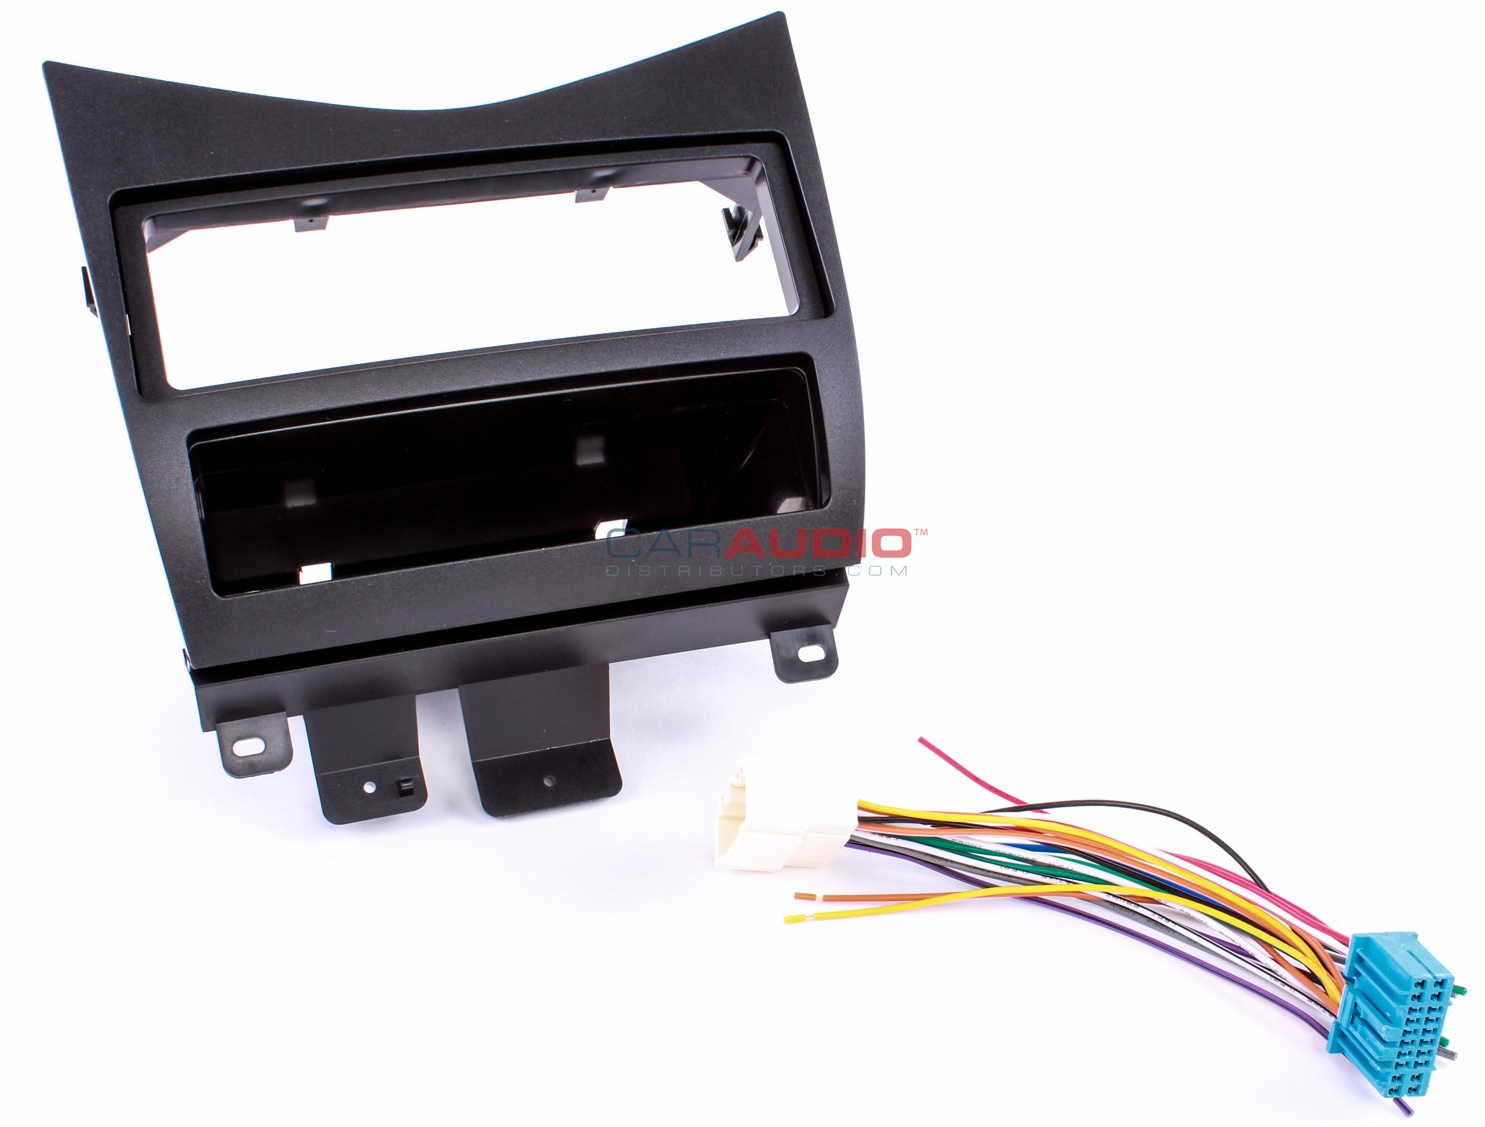 new metra 99 7862 single din iso car stereo dash kit for. Black Bedroom Furniture Sets. Home Design Ideas